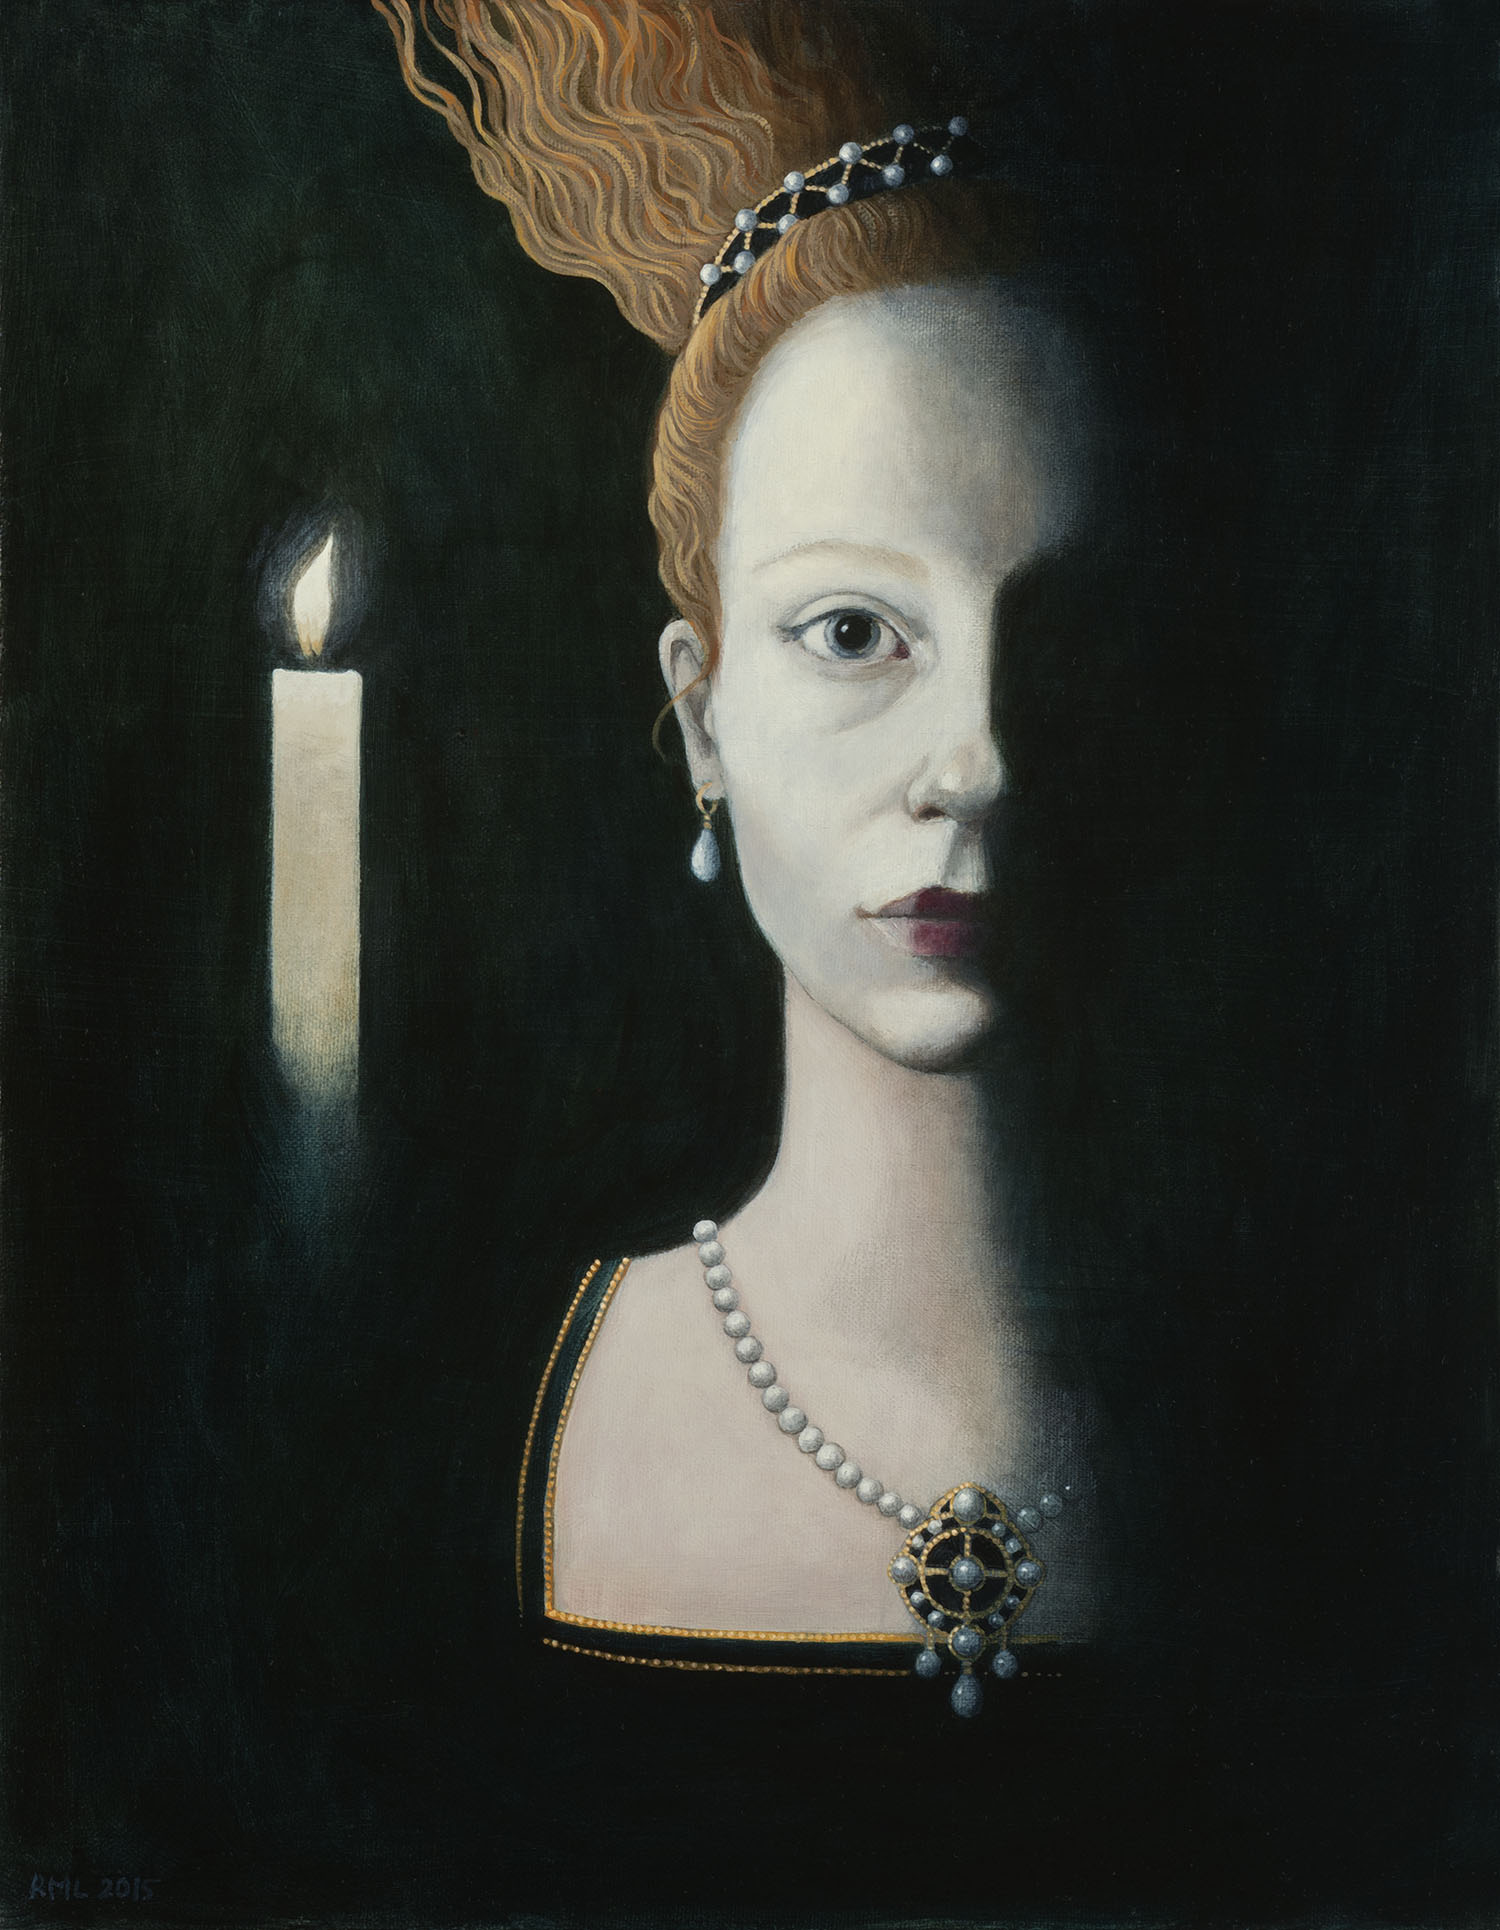 Rosalind Lyons was artist in residence at Shakespeare's Globe Theatre